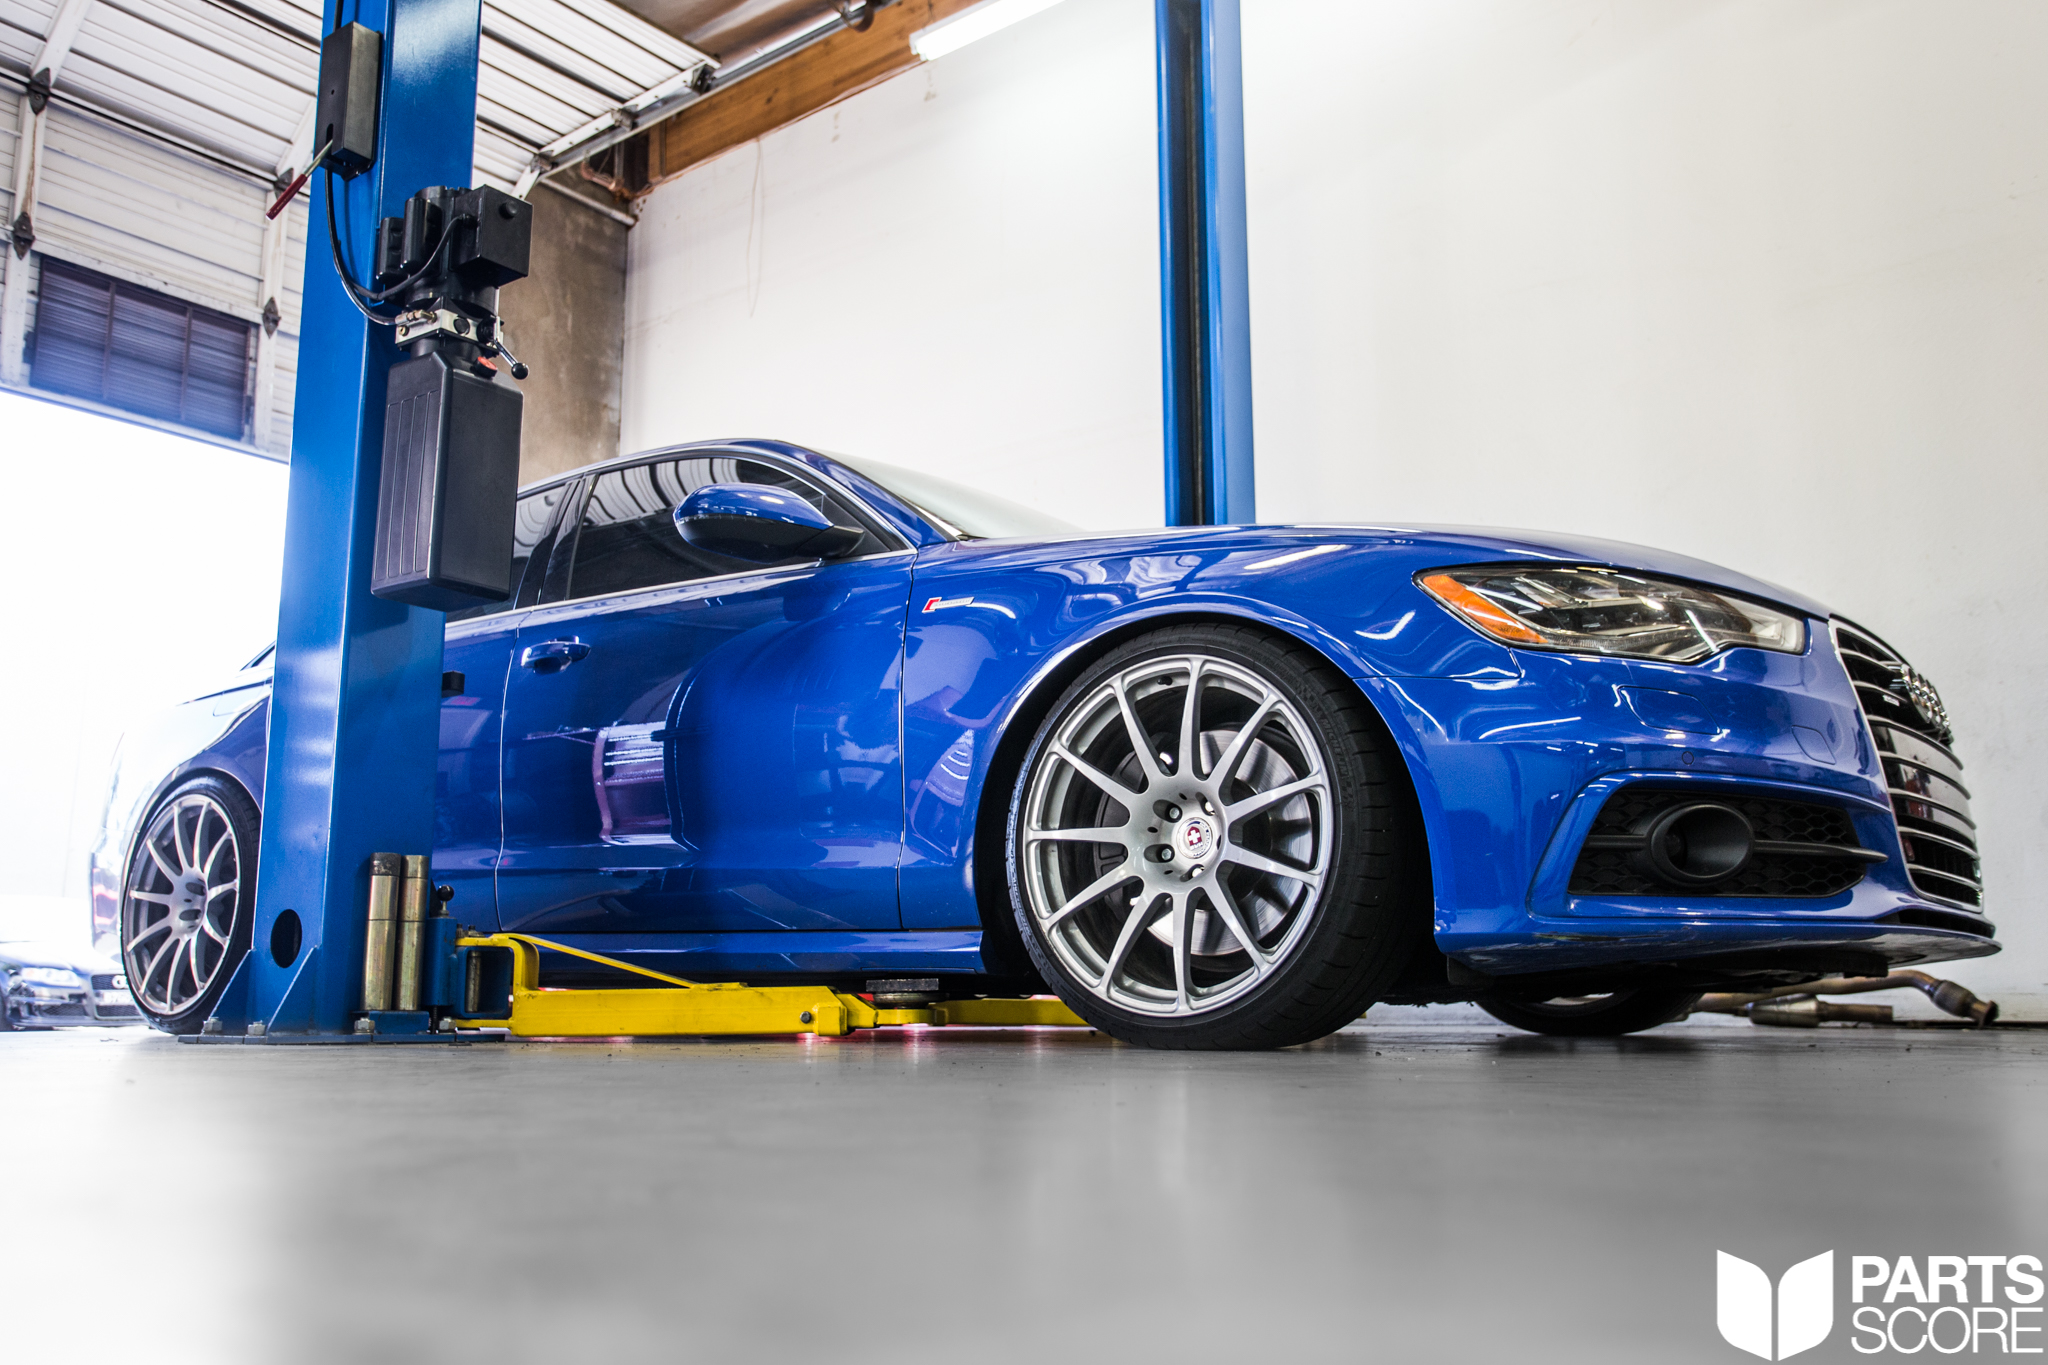 partsscore, parts score, audi a6, supercharged, v6, supercharged v6, nogaro blue, audi exclusive, awe tuning, awetuning official, quattro, nogaro, blue, hre wheels, kw coilovers, downpipes, touring exhaust, touring edition, rare, super rare, ultra rare, nogaro blue audi, c7a6, audi c7 a6, 3.0t, scottsdale, arizona, az